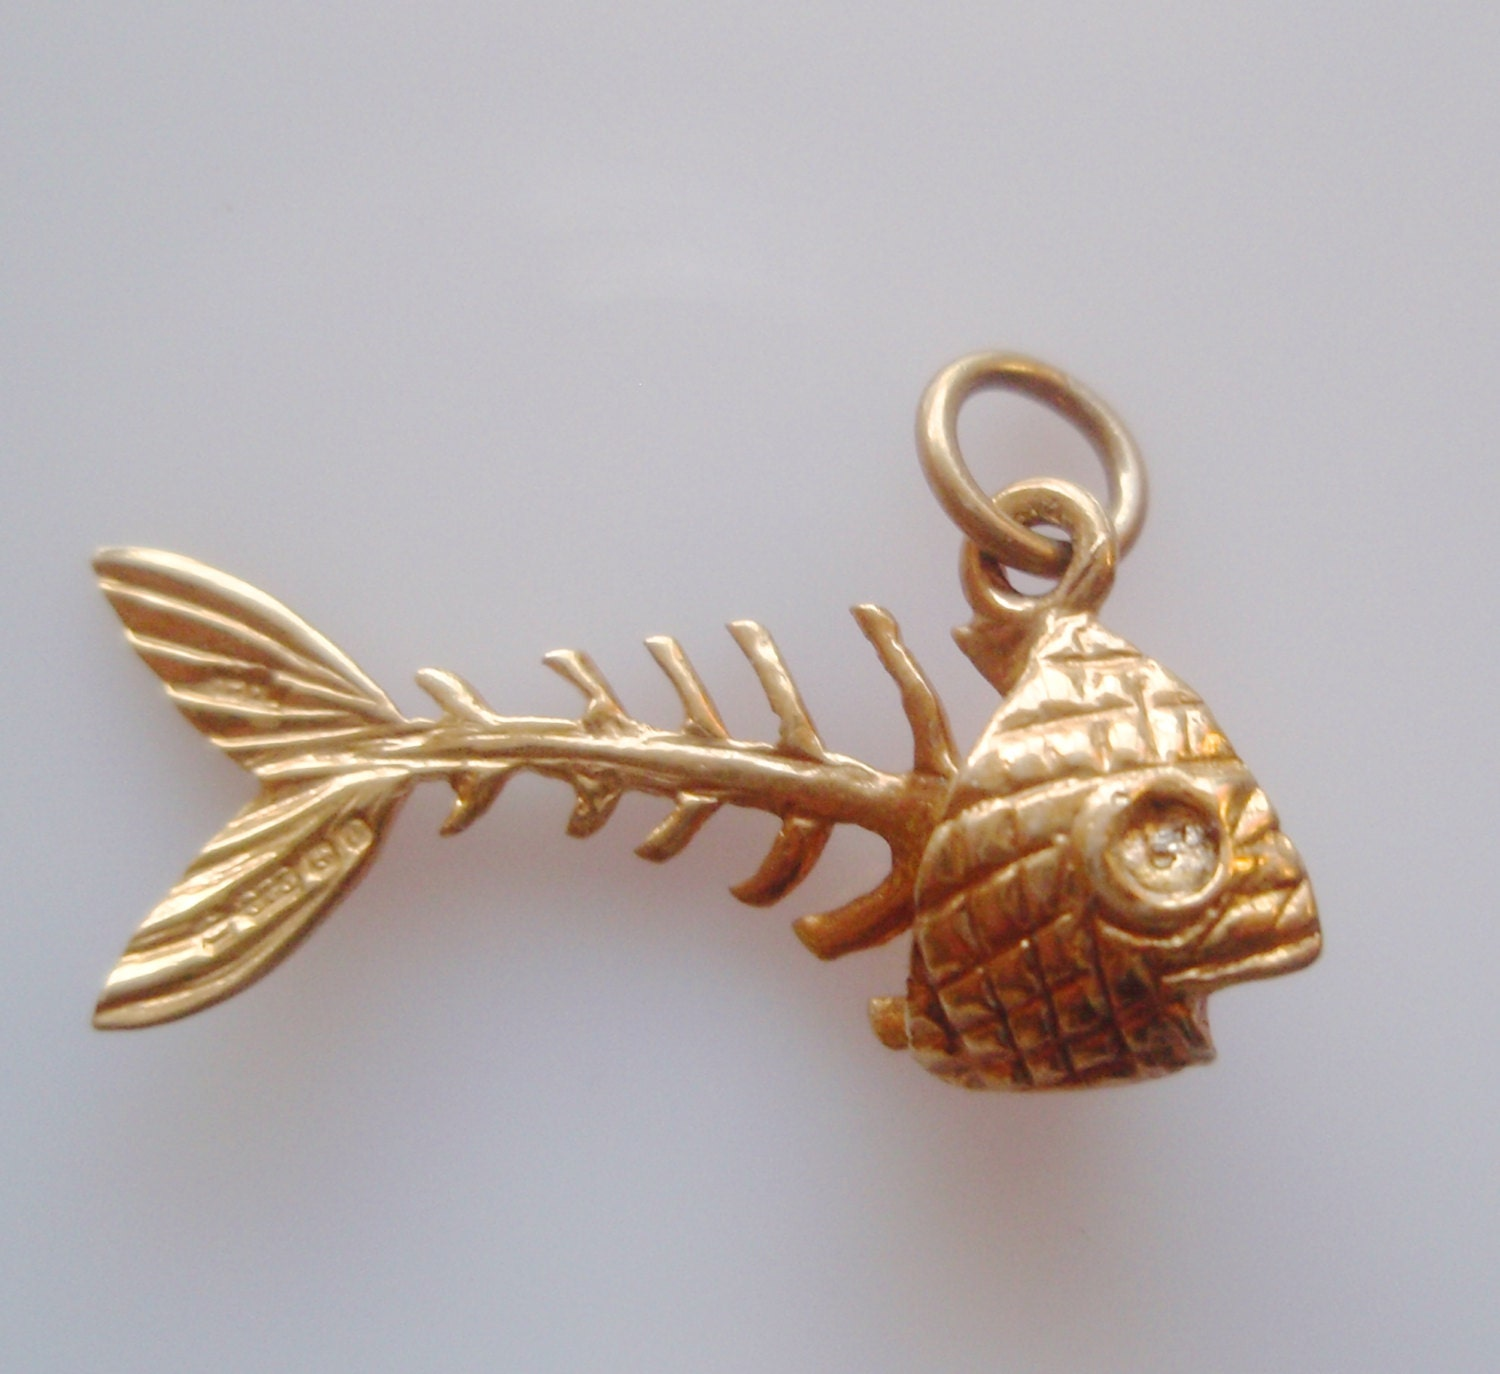 Vintage 9 ct gold fish skeleton charm or pendant for Gold fish pendant